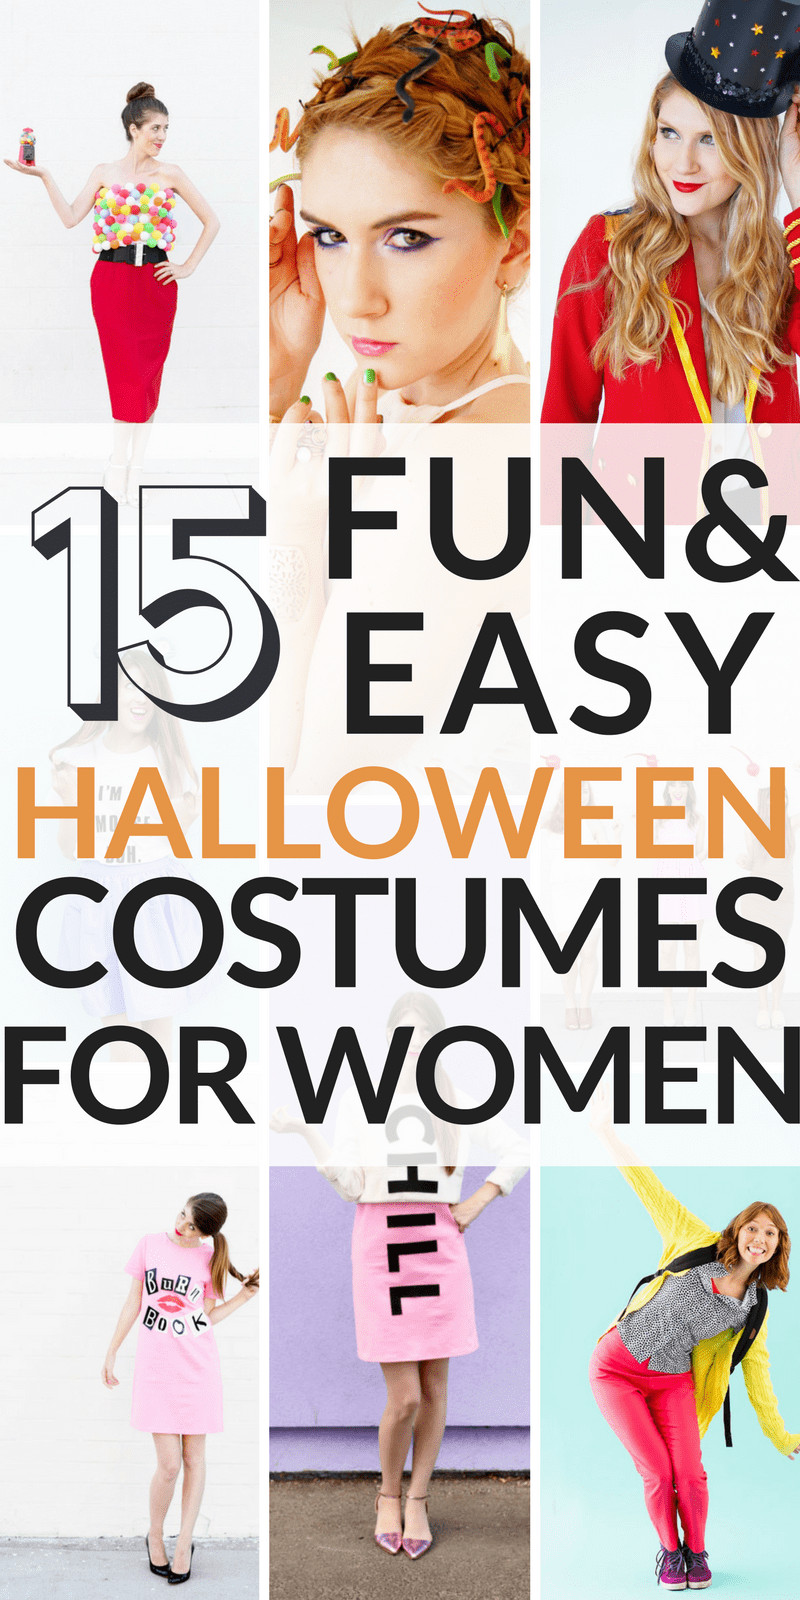 Easy DIY Halloween Costumes For Adults  15 Cheap and Easy DIY Halloween Costumes for Women